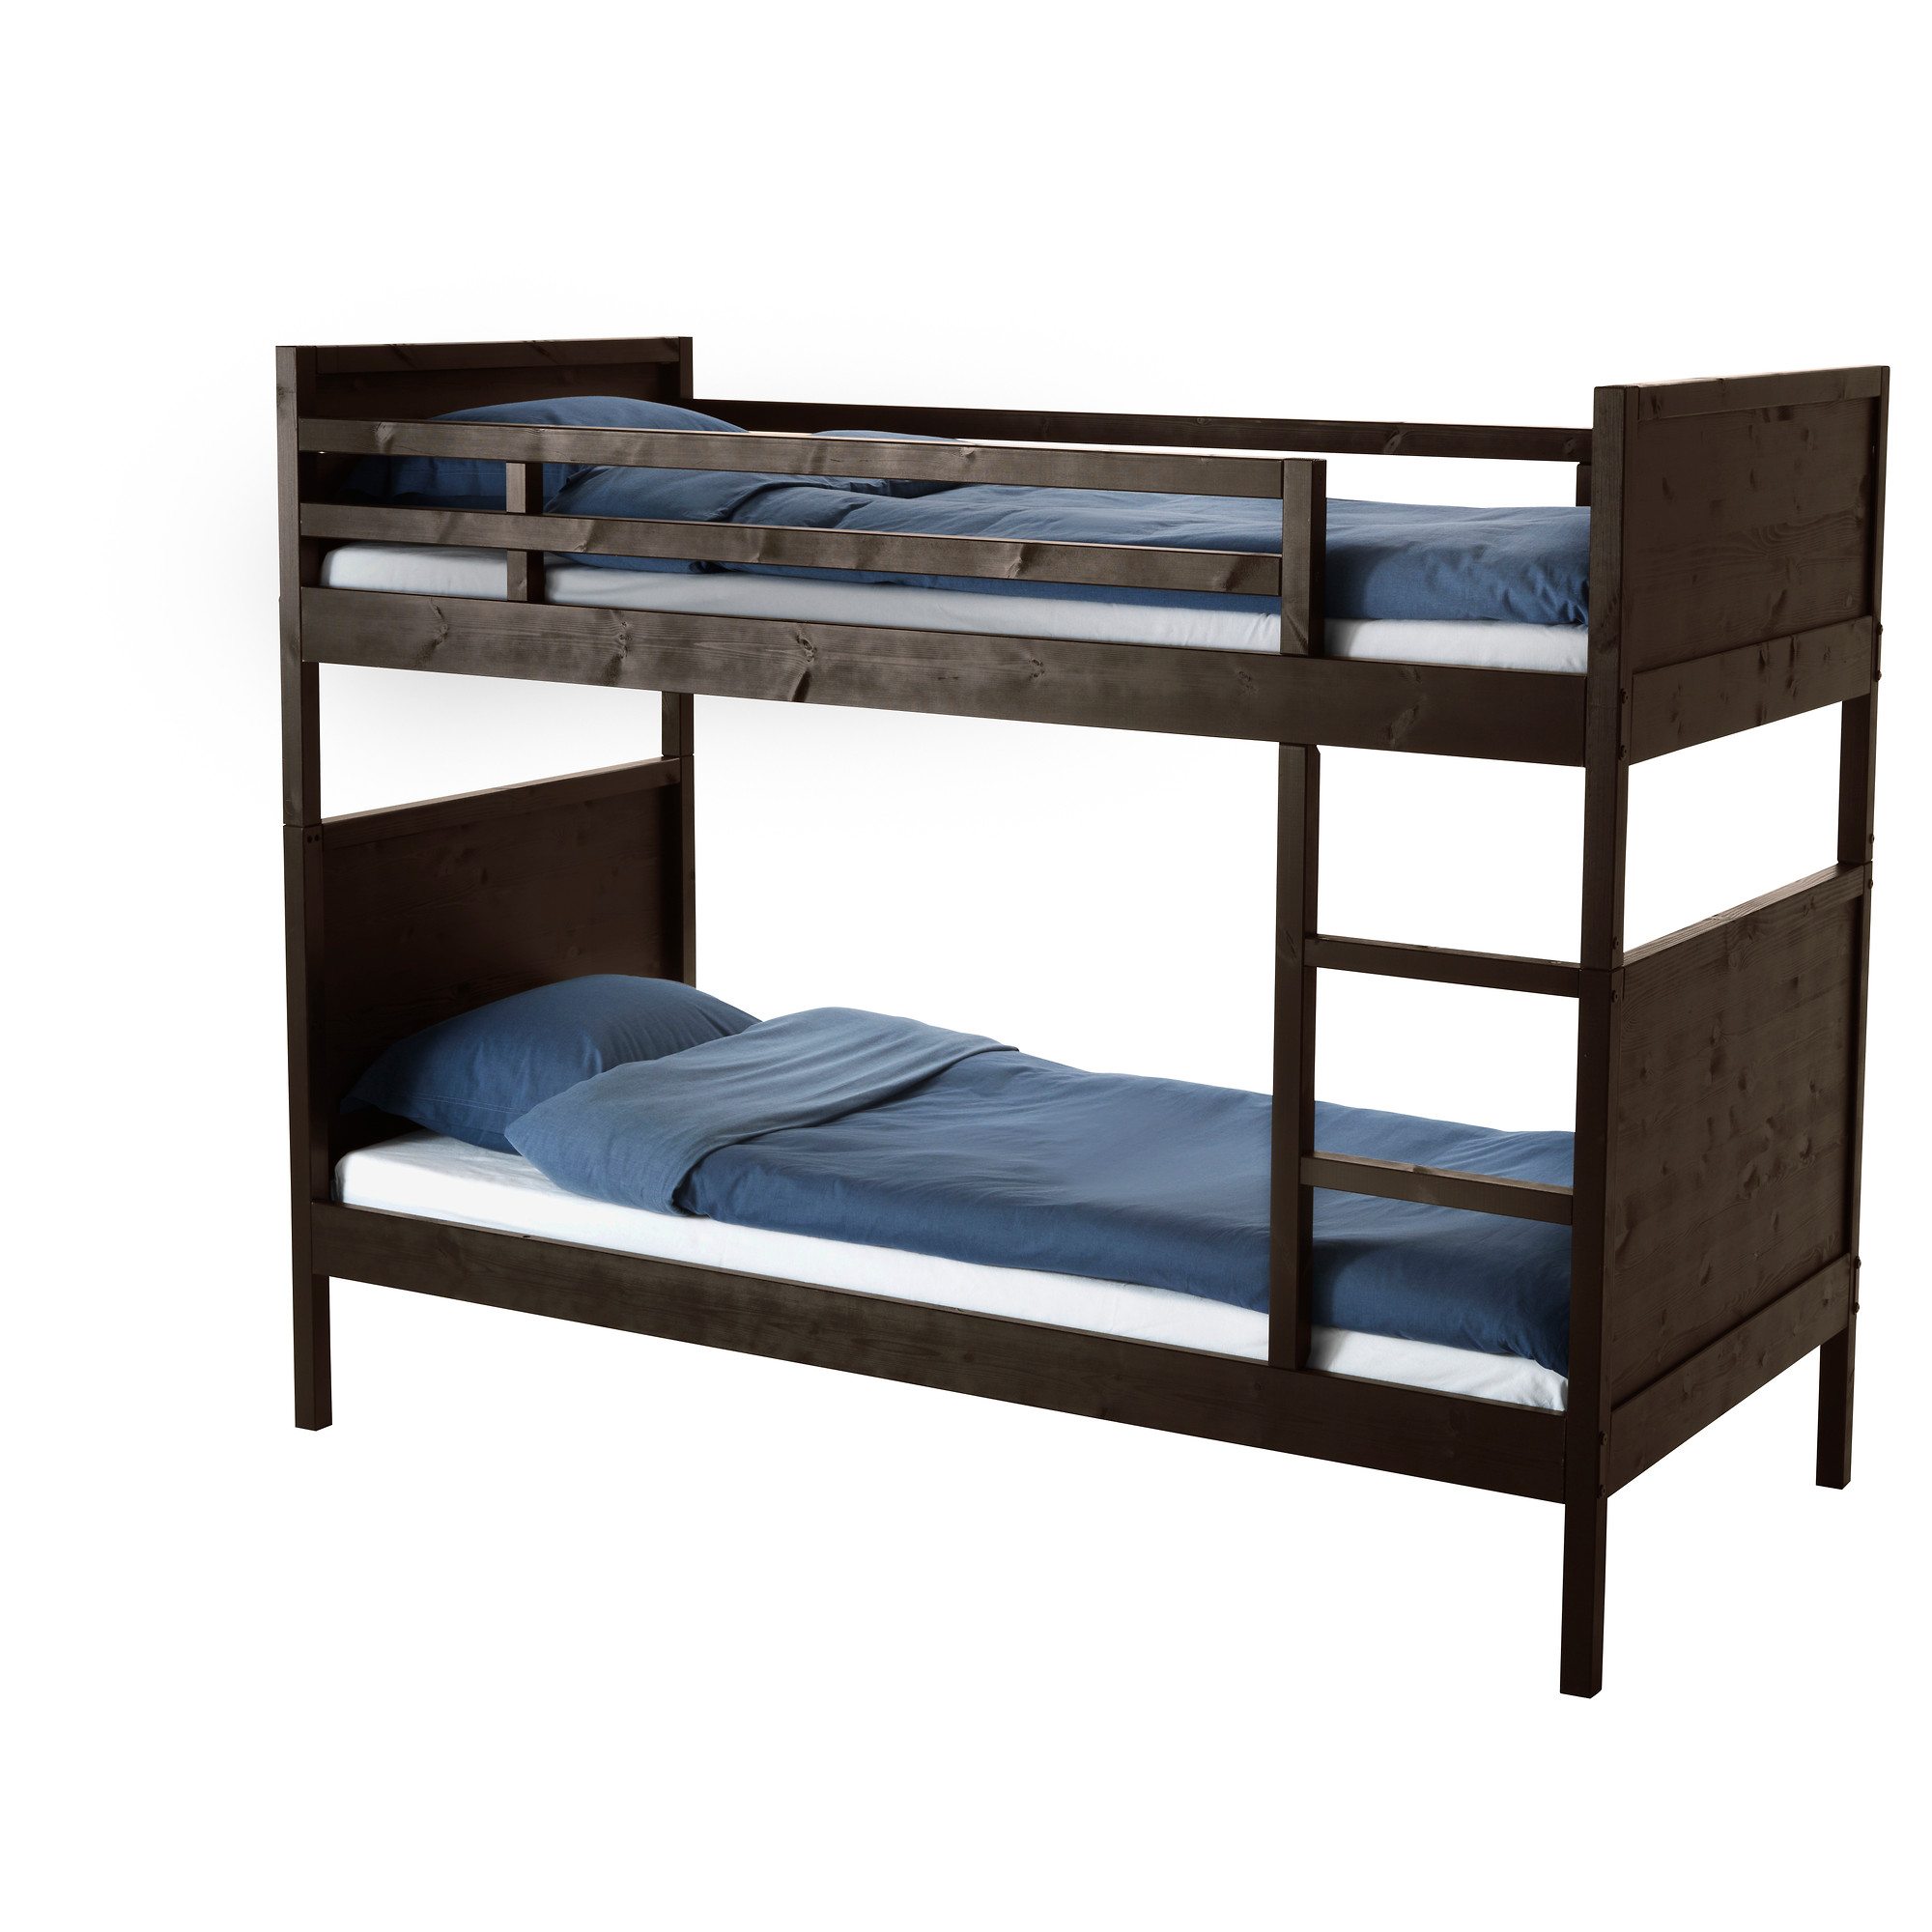 beds bunk ikea hack hackers bed bunkbeds mydal triple img